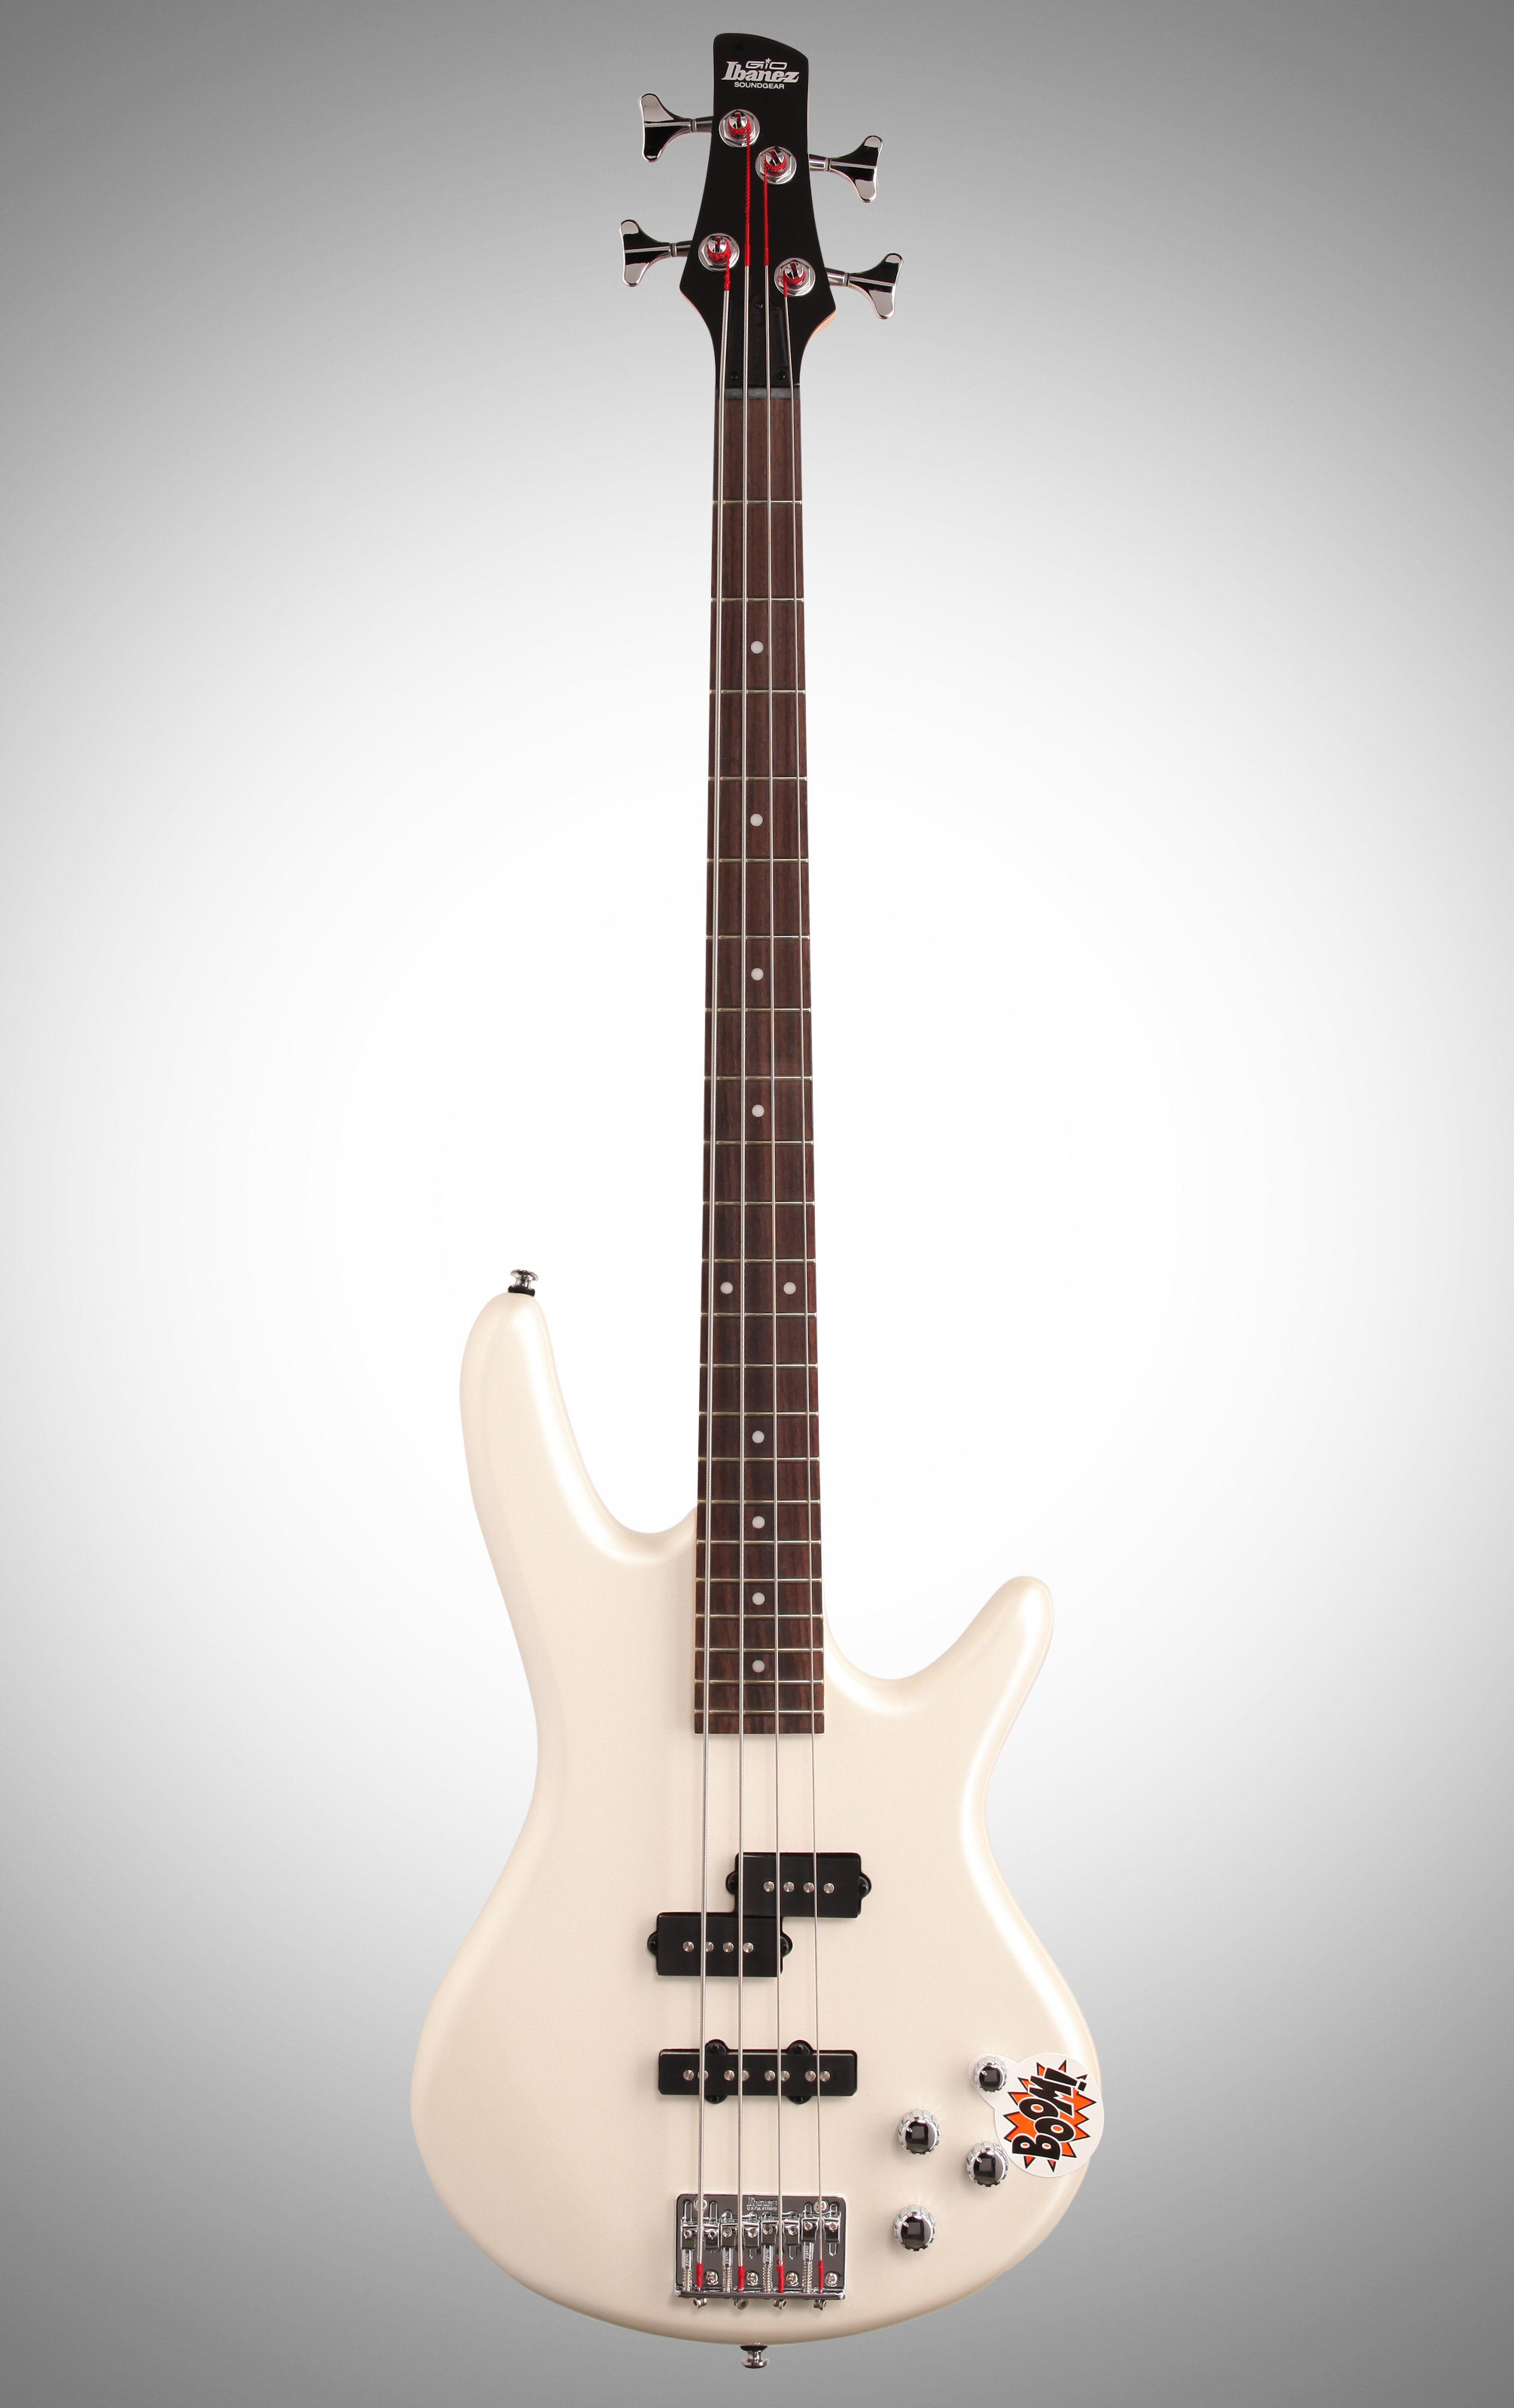 Ibanez Gsr200 Electric Bass Pearl White